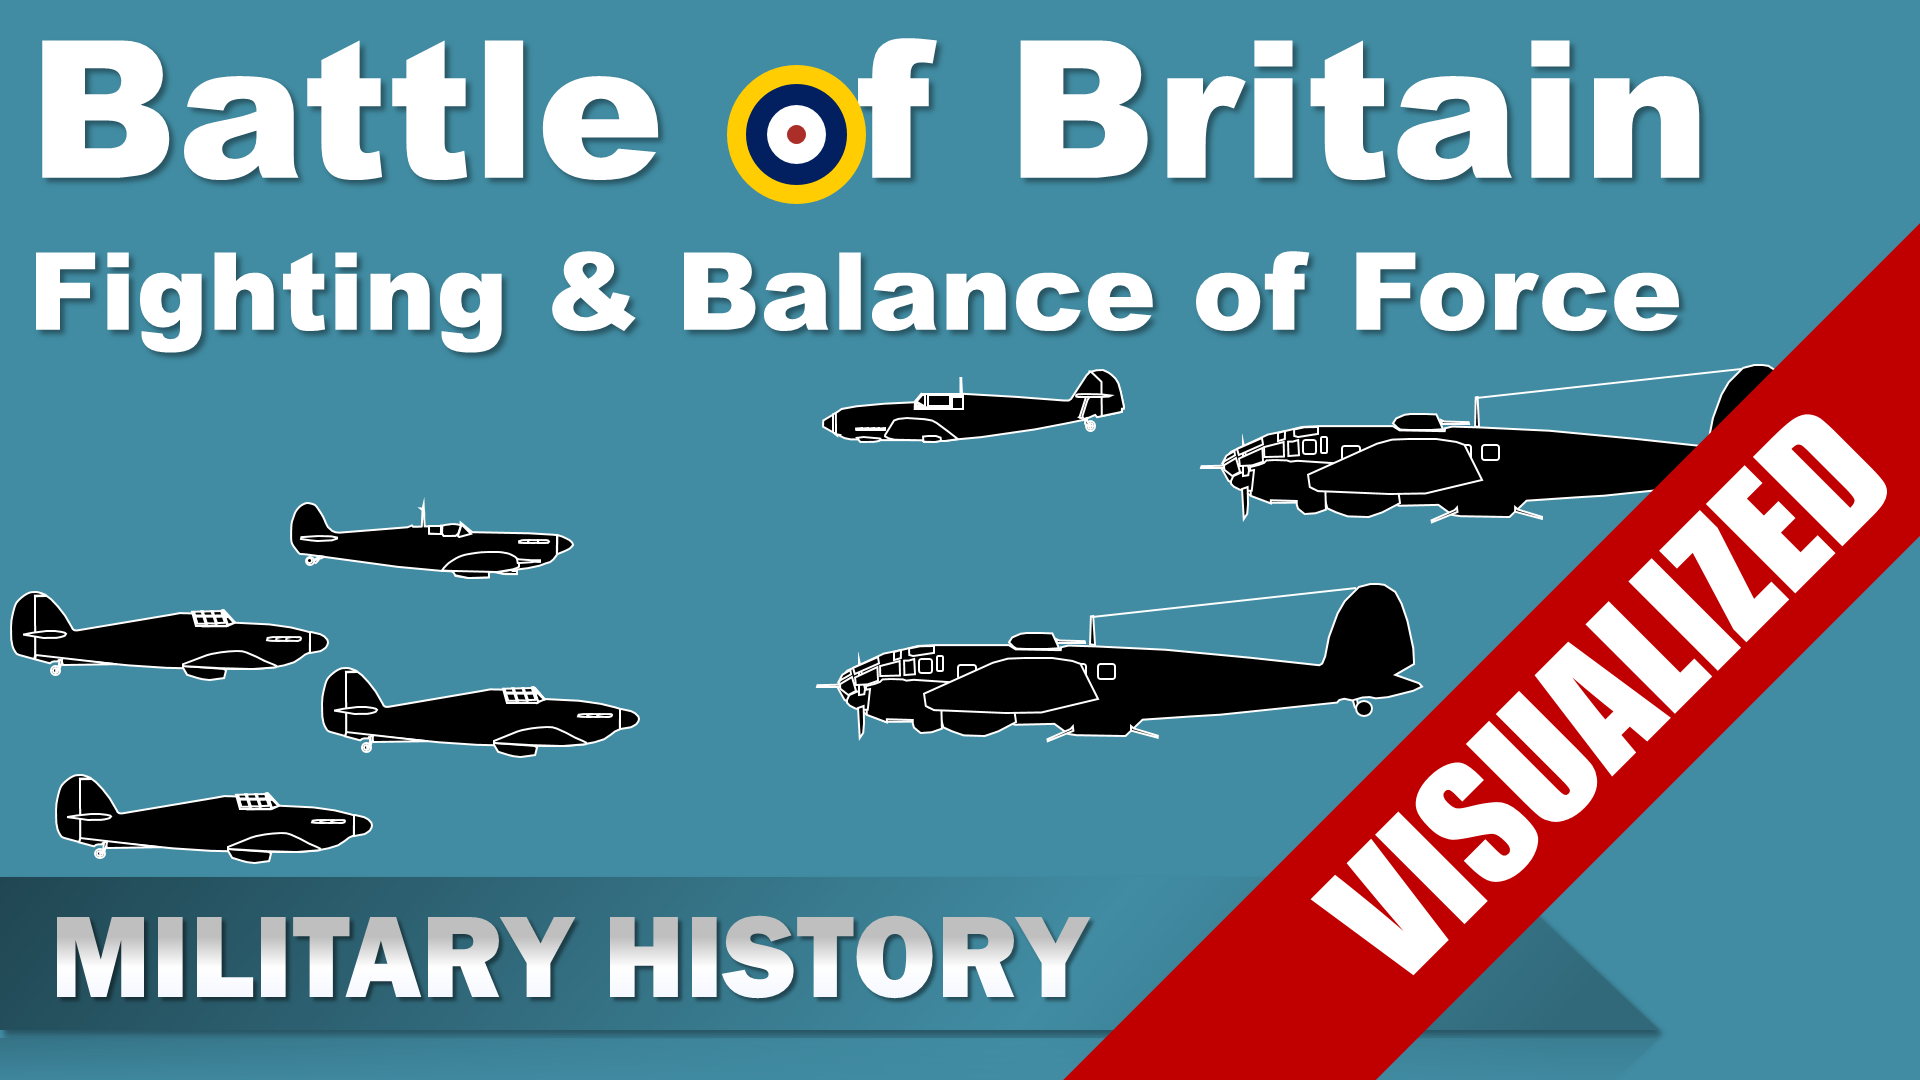 Battle Of Britain – The Fighting & Balance of Force